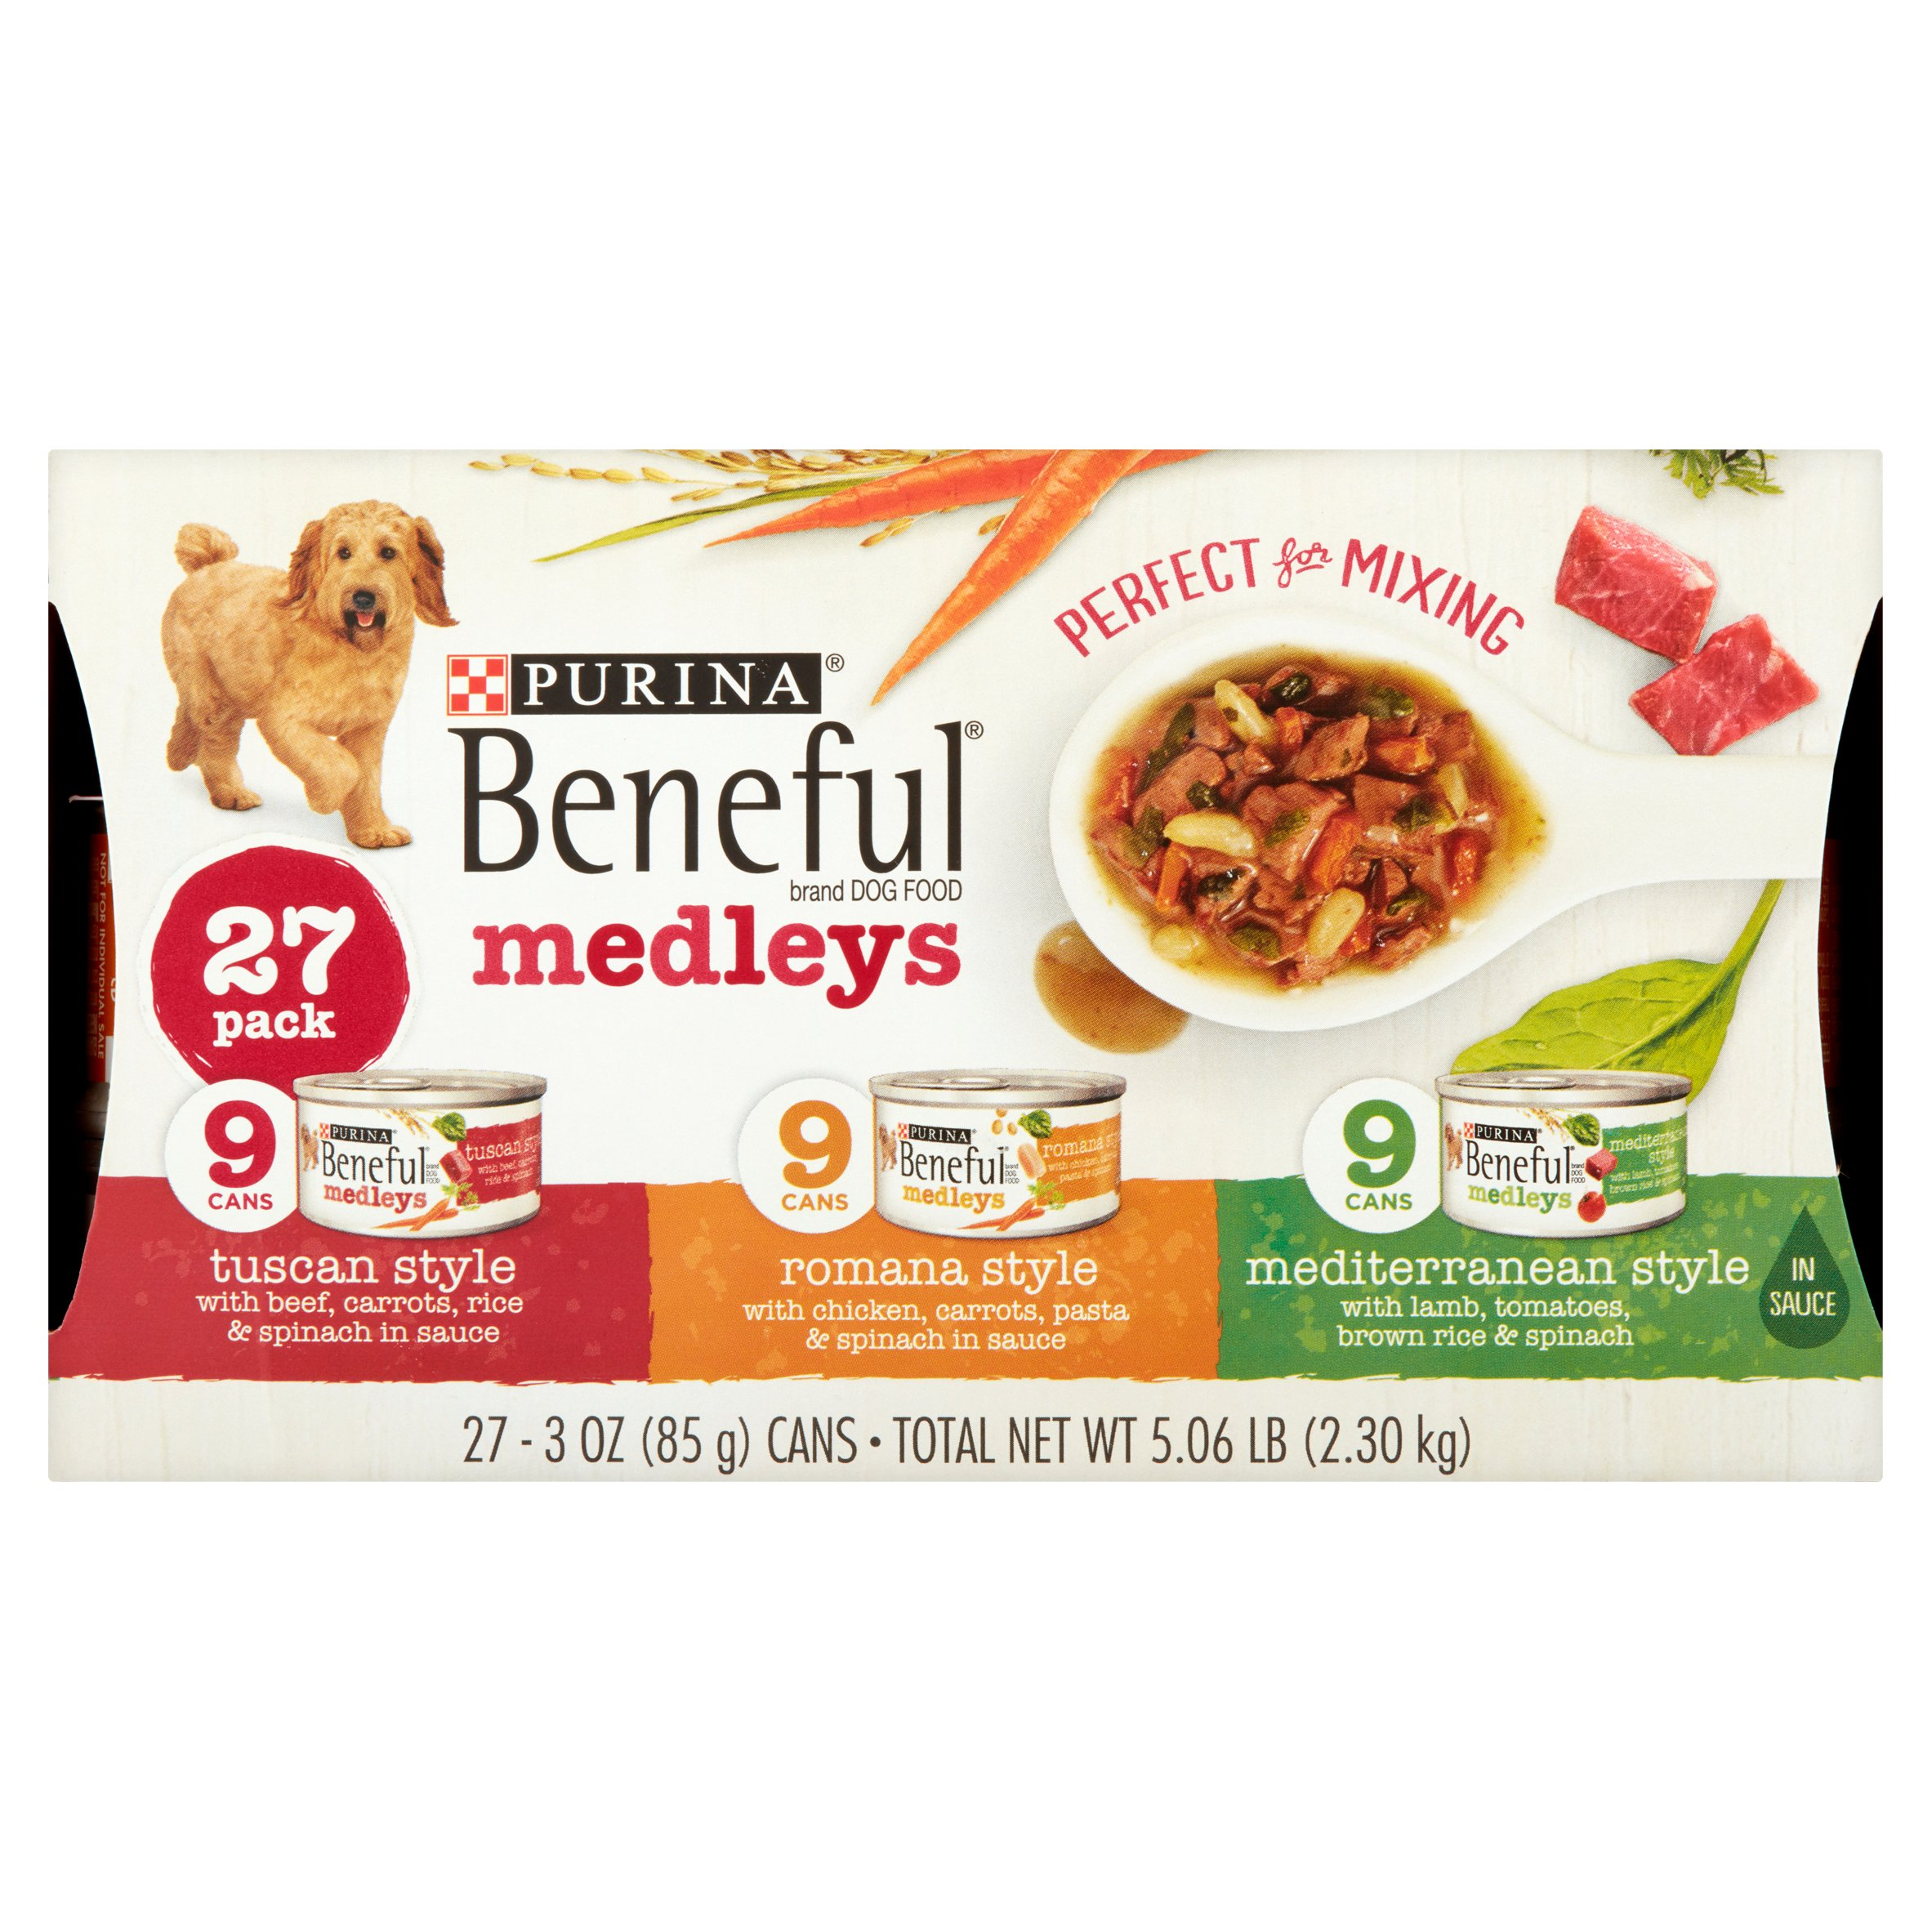 walmart 2203 loveridge rd pittsburg ca 94565 walmart com purina beneful medleys variety